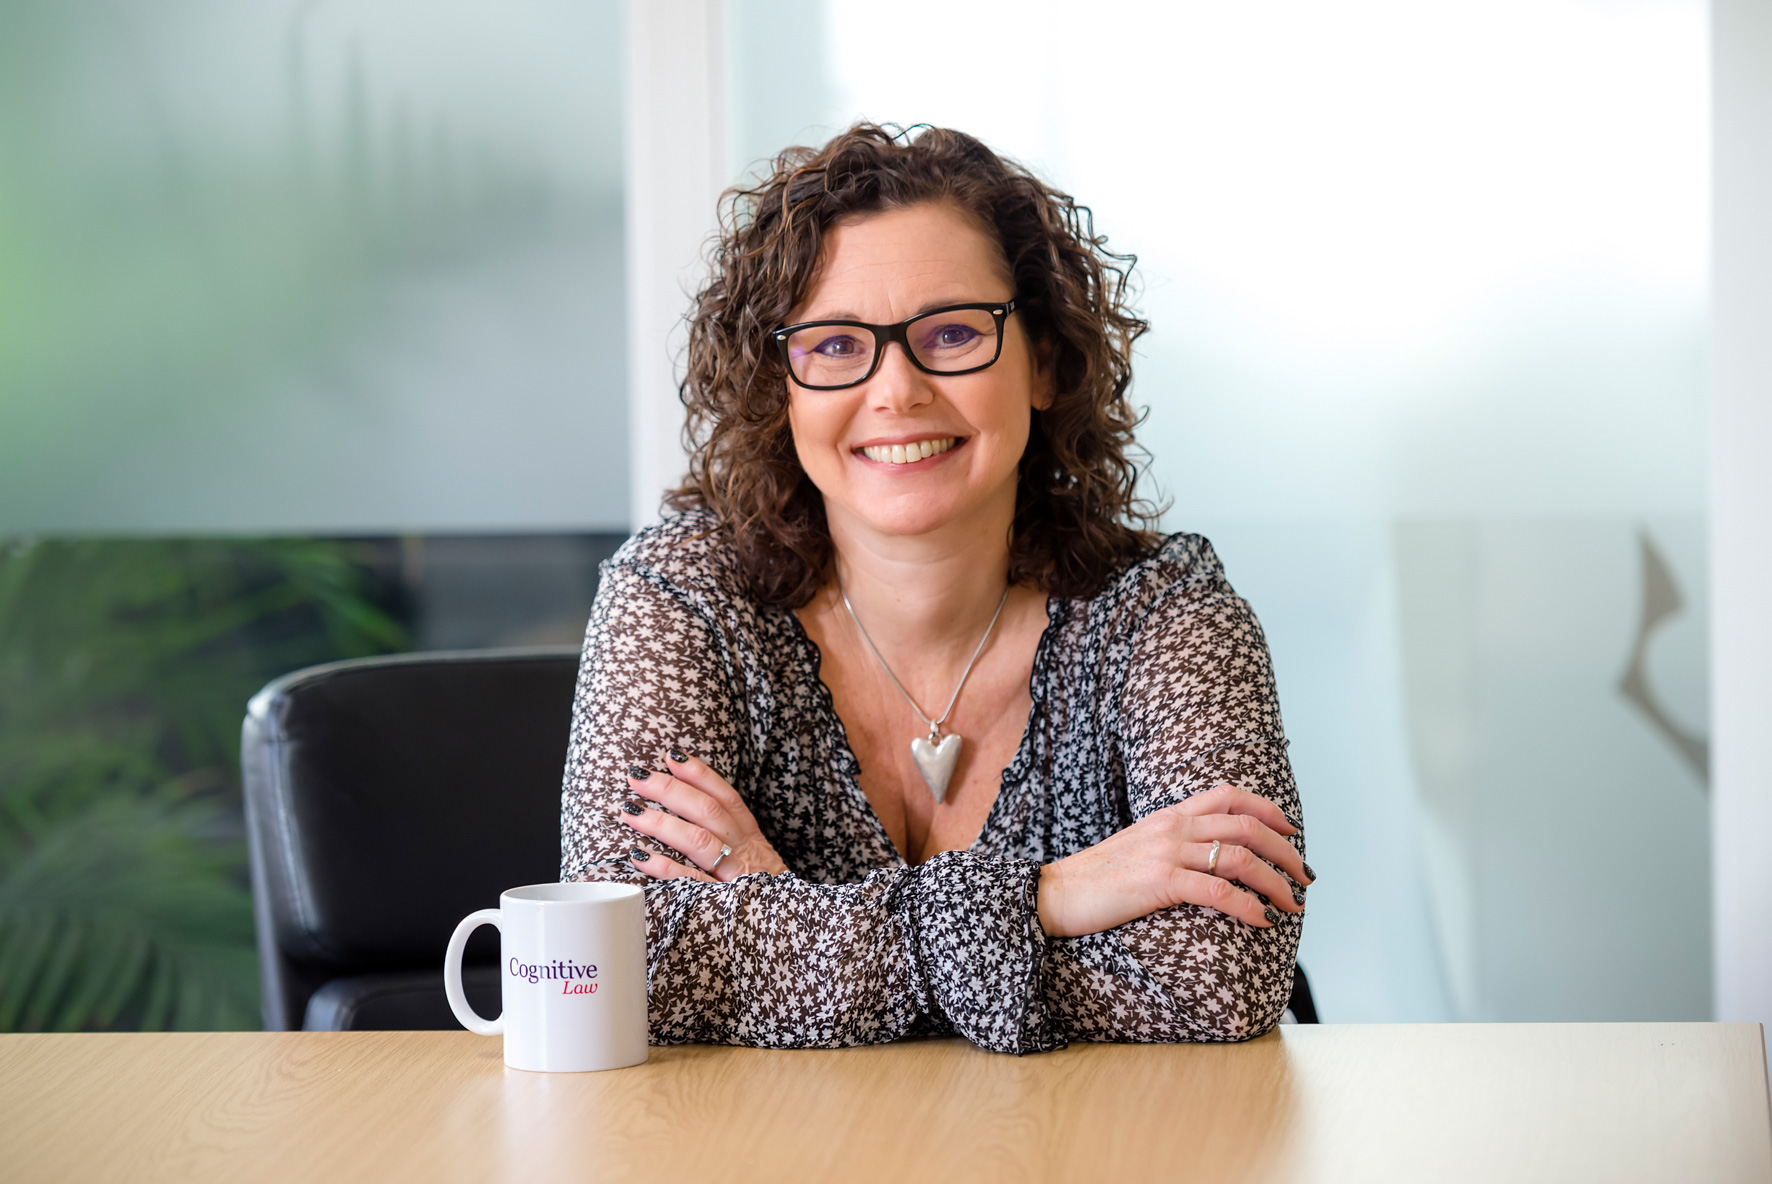 Lucy Tarrant, Managing Director and Solicitor at Cognitive Law